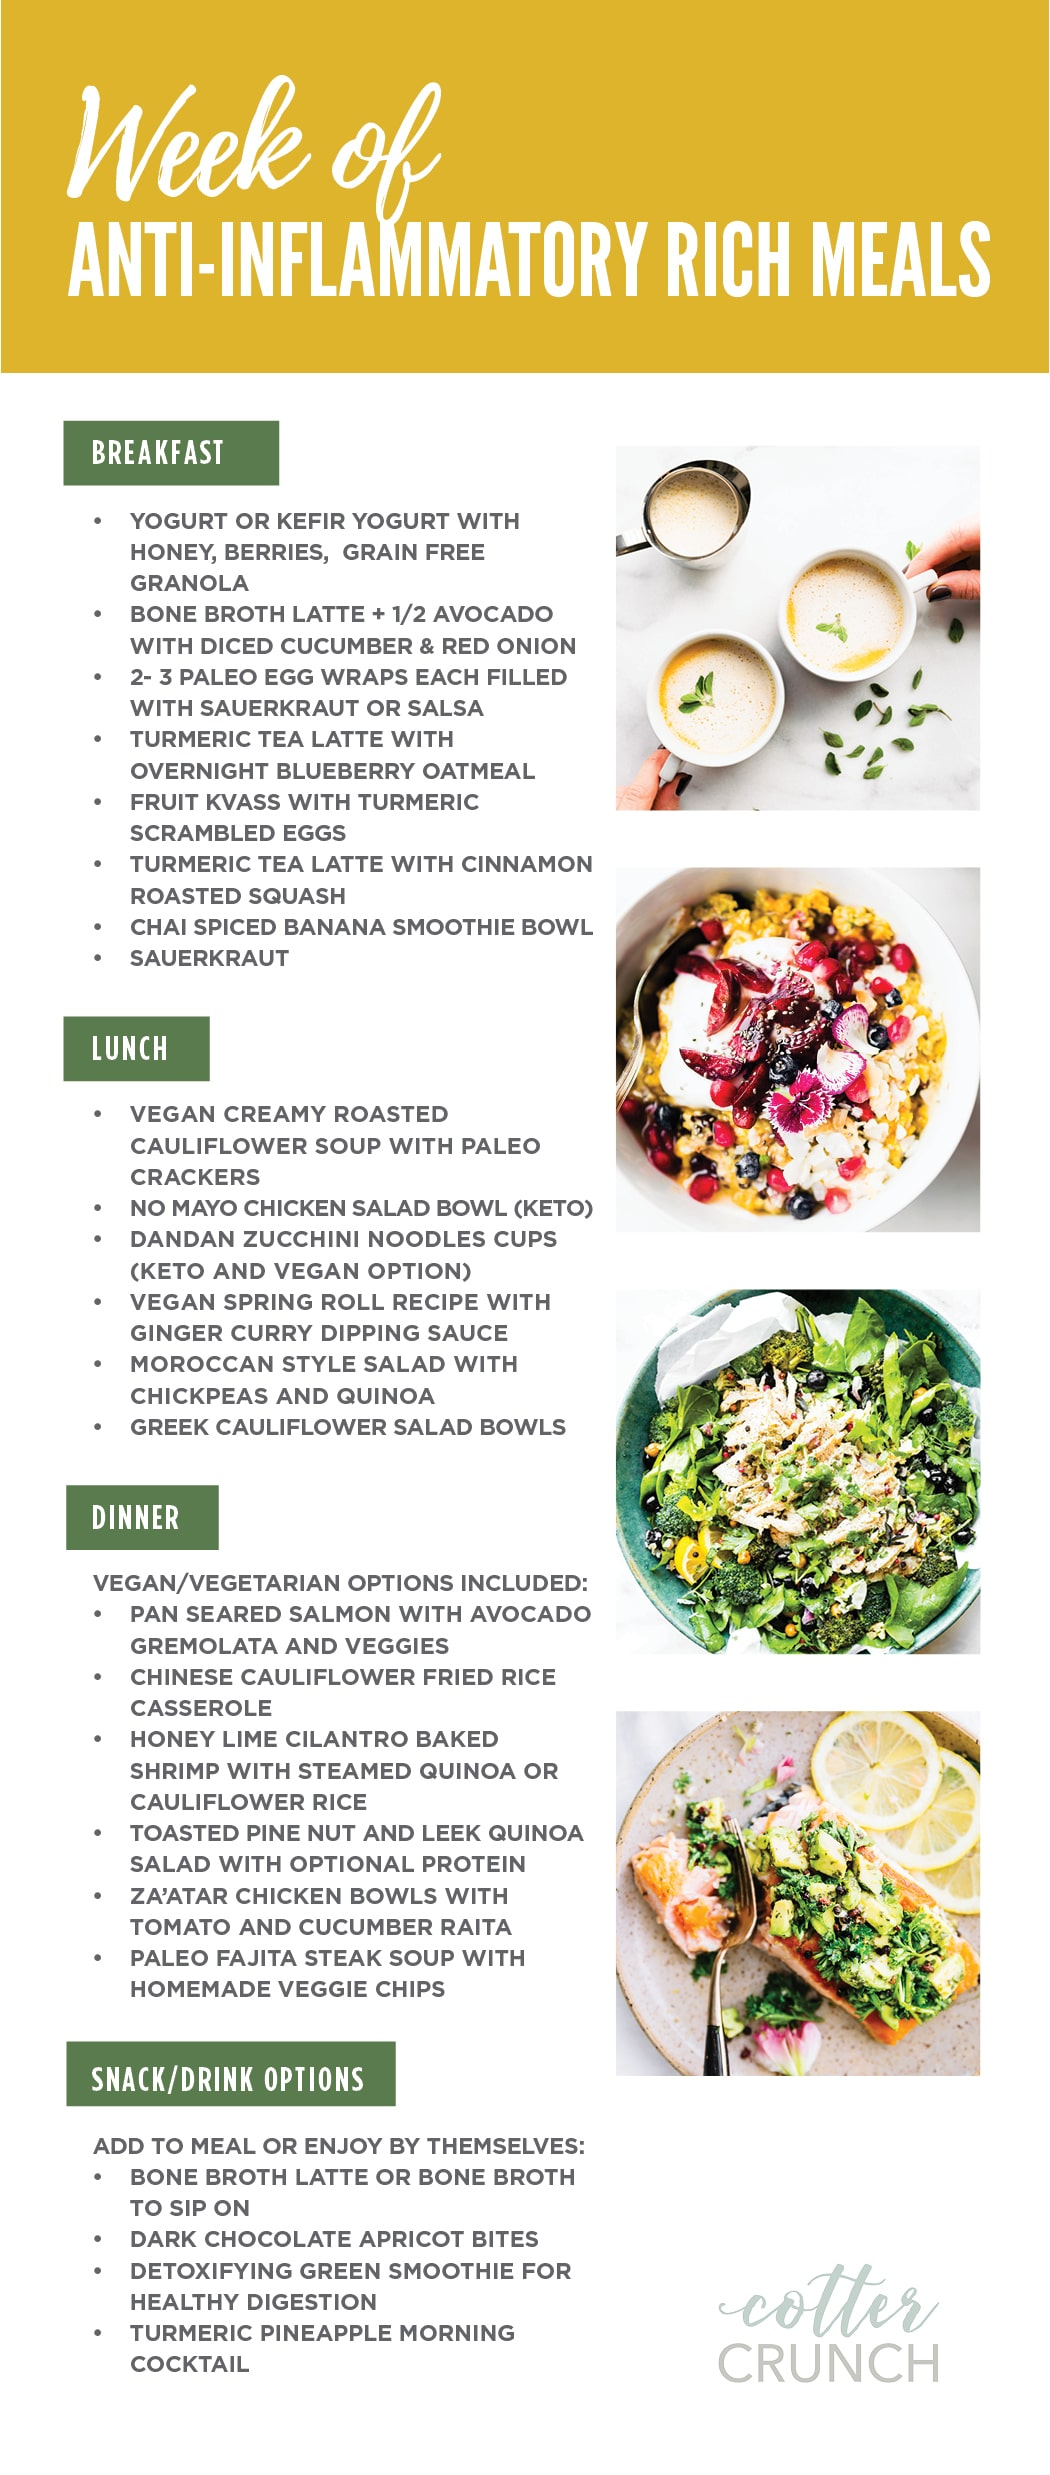 7 day Anti-inflammatory Diet Reset and action plan! #mealplan #antiinflammatory #glutenfree #healthy #mealprep